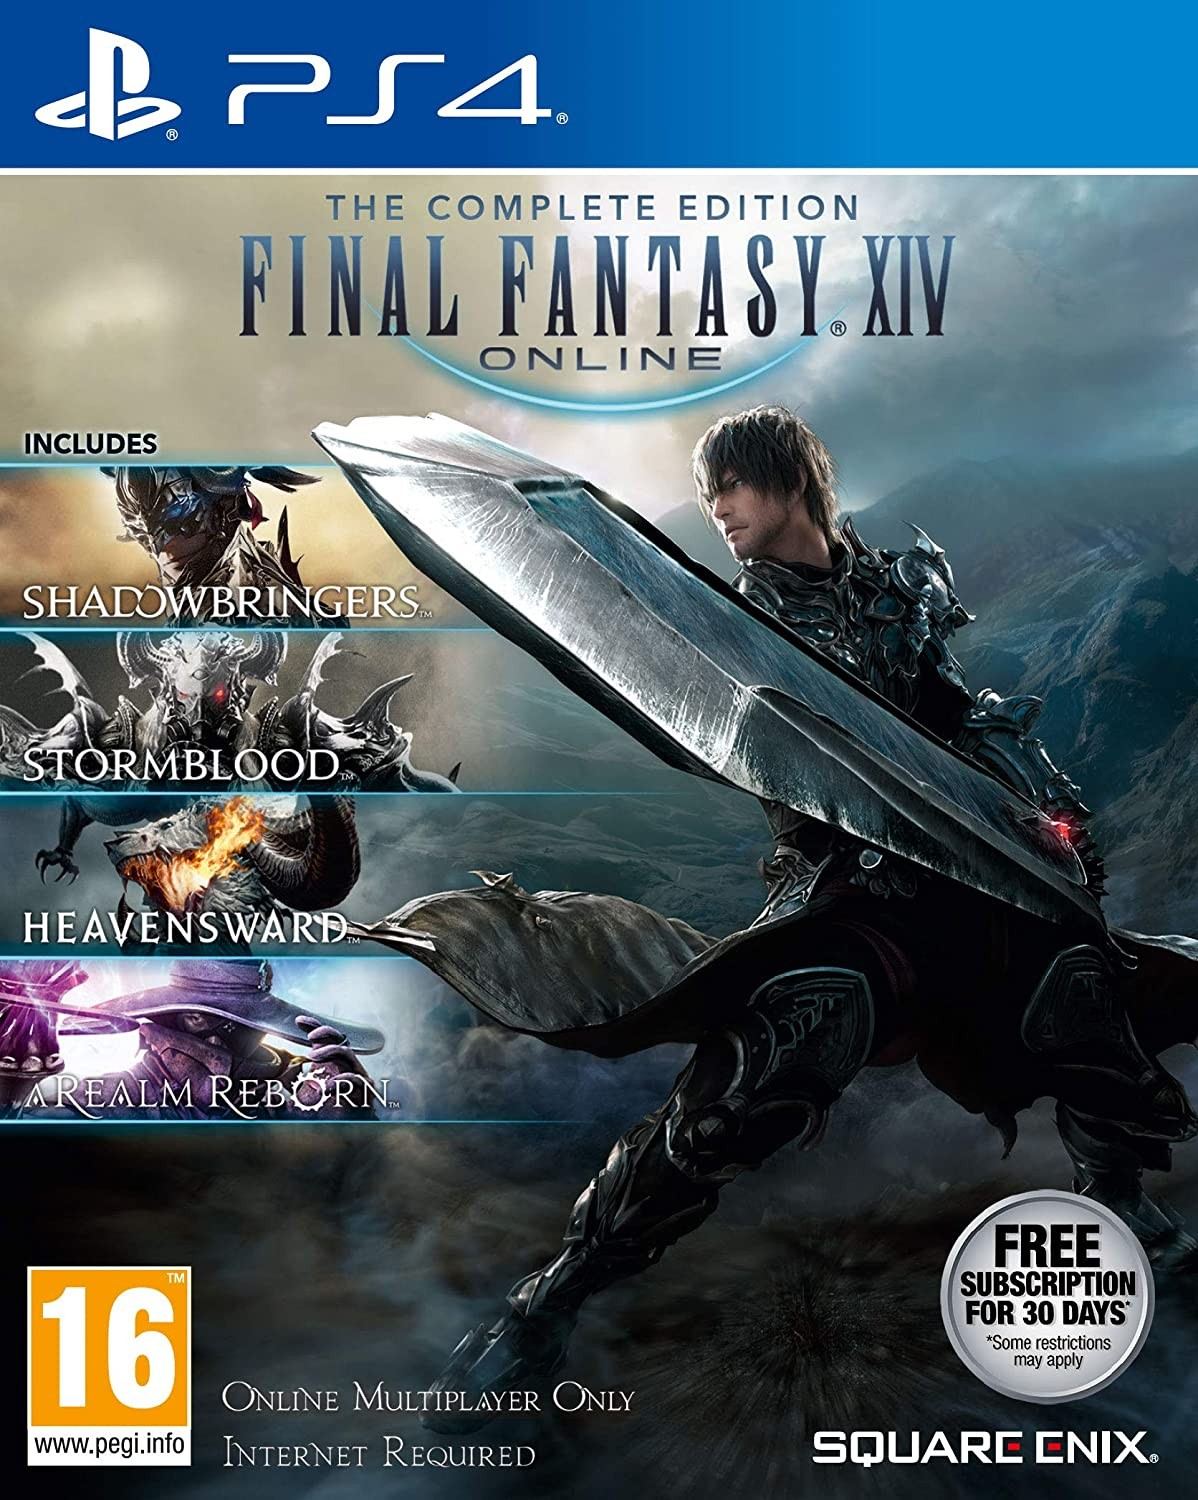 Final Fantasy XIV Online Complete Edition | Final Fantasy 14 PS4